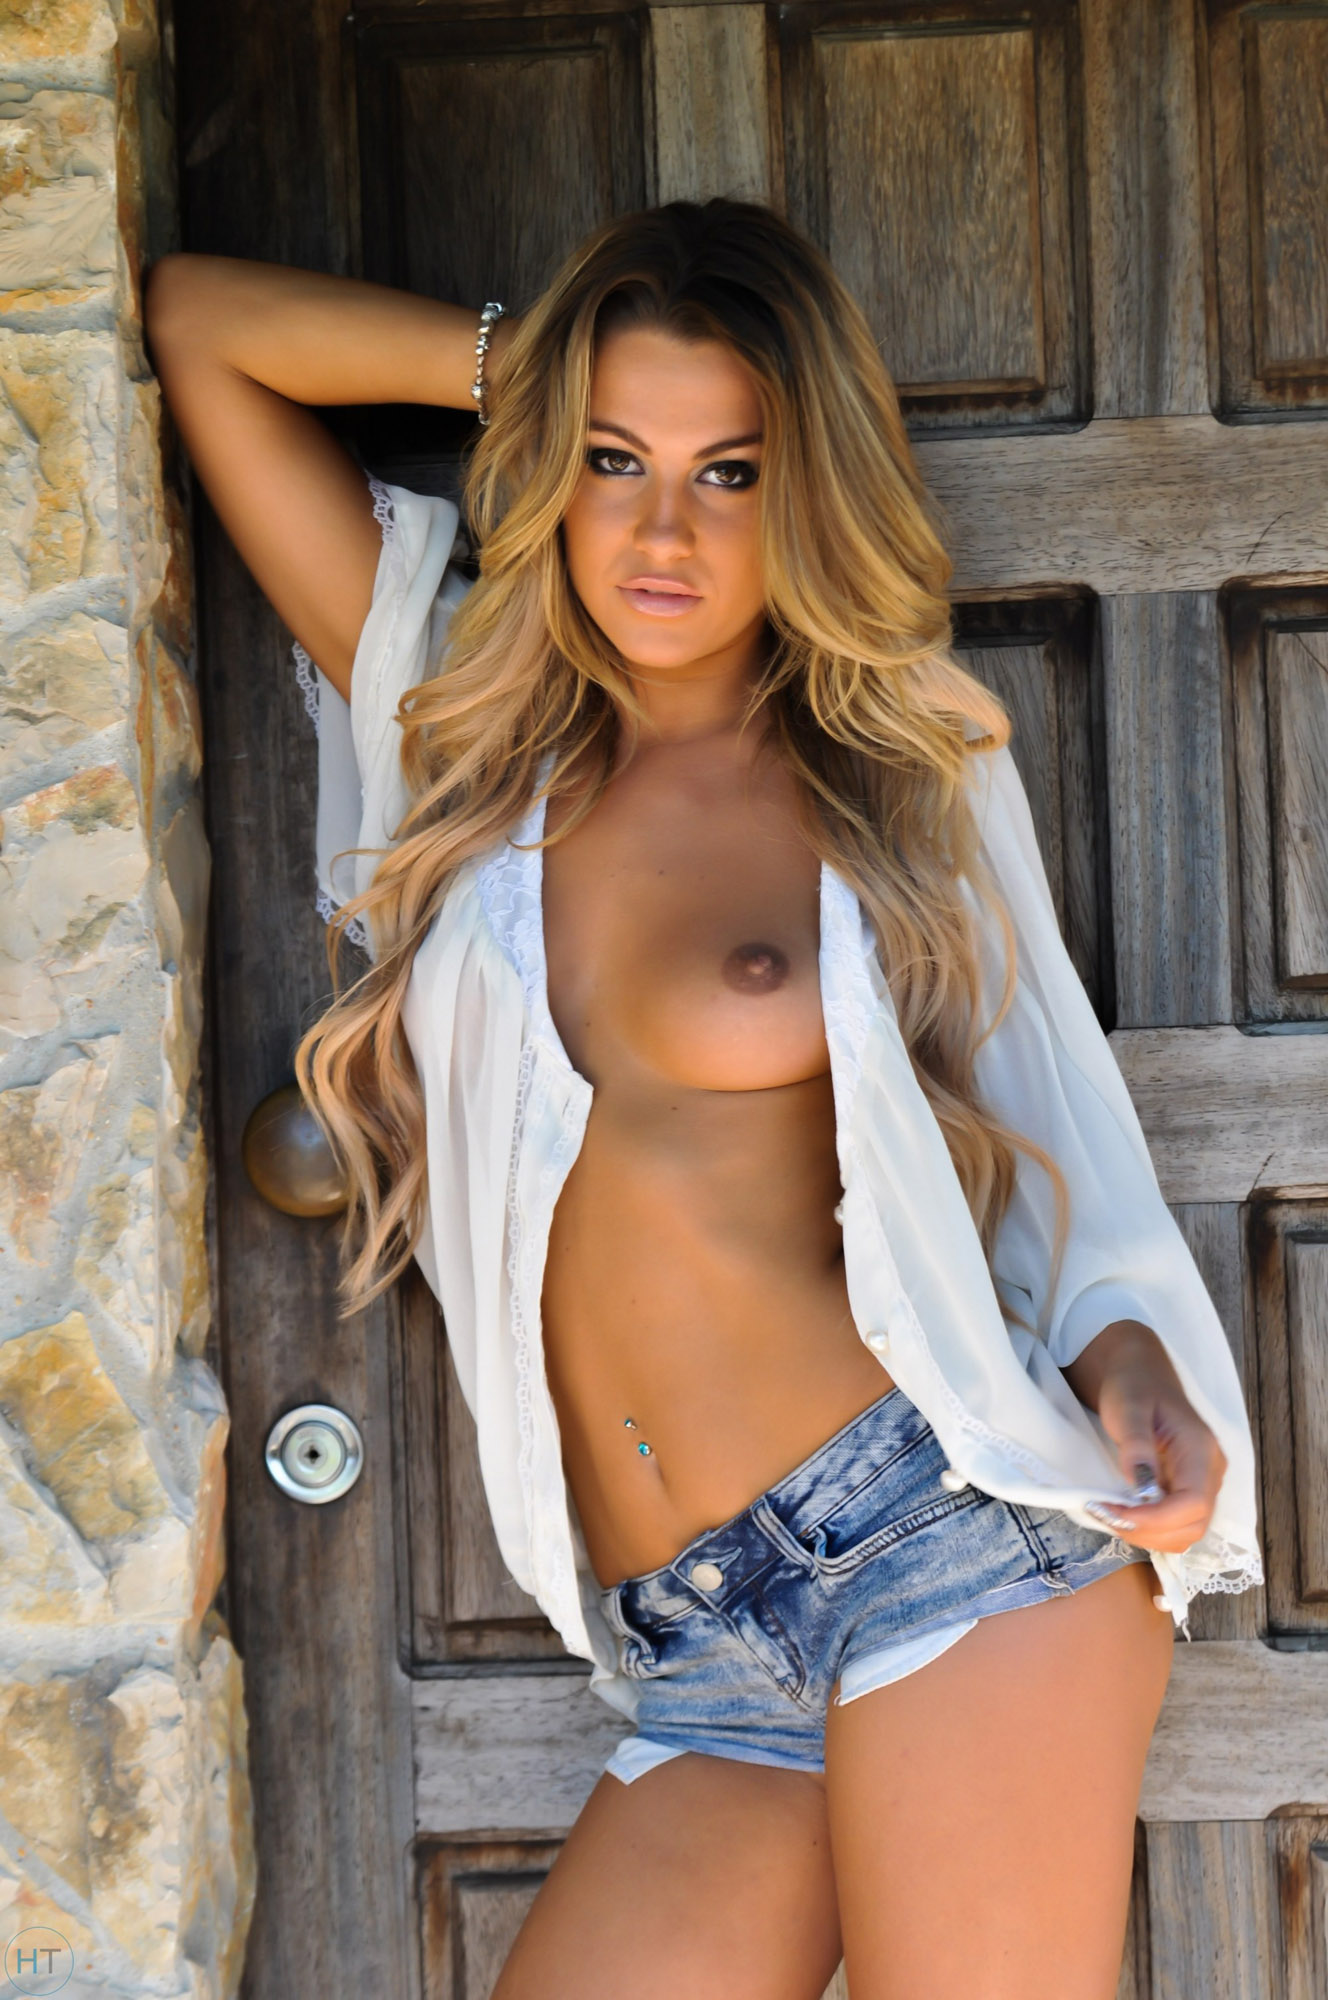 Opinion you playboy girls striping naked in tight jeans were